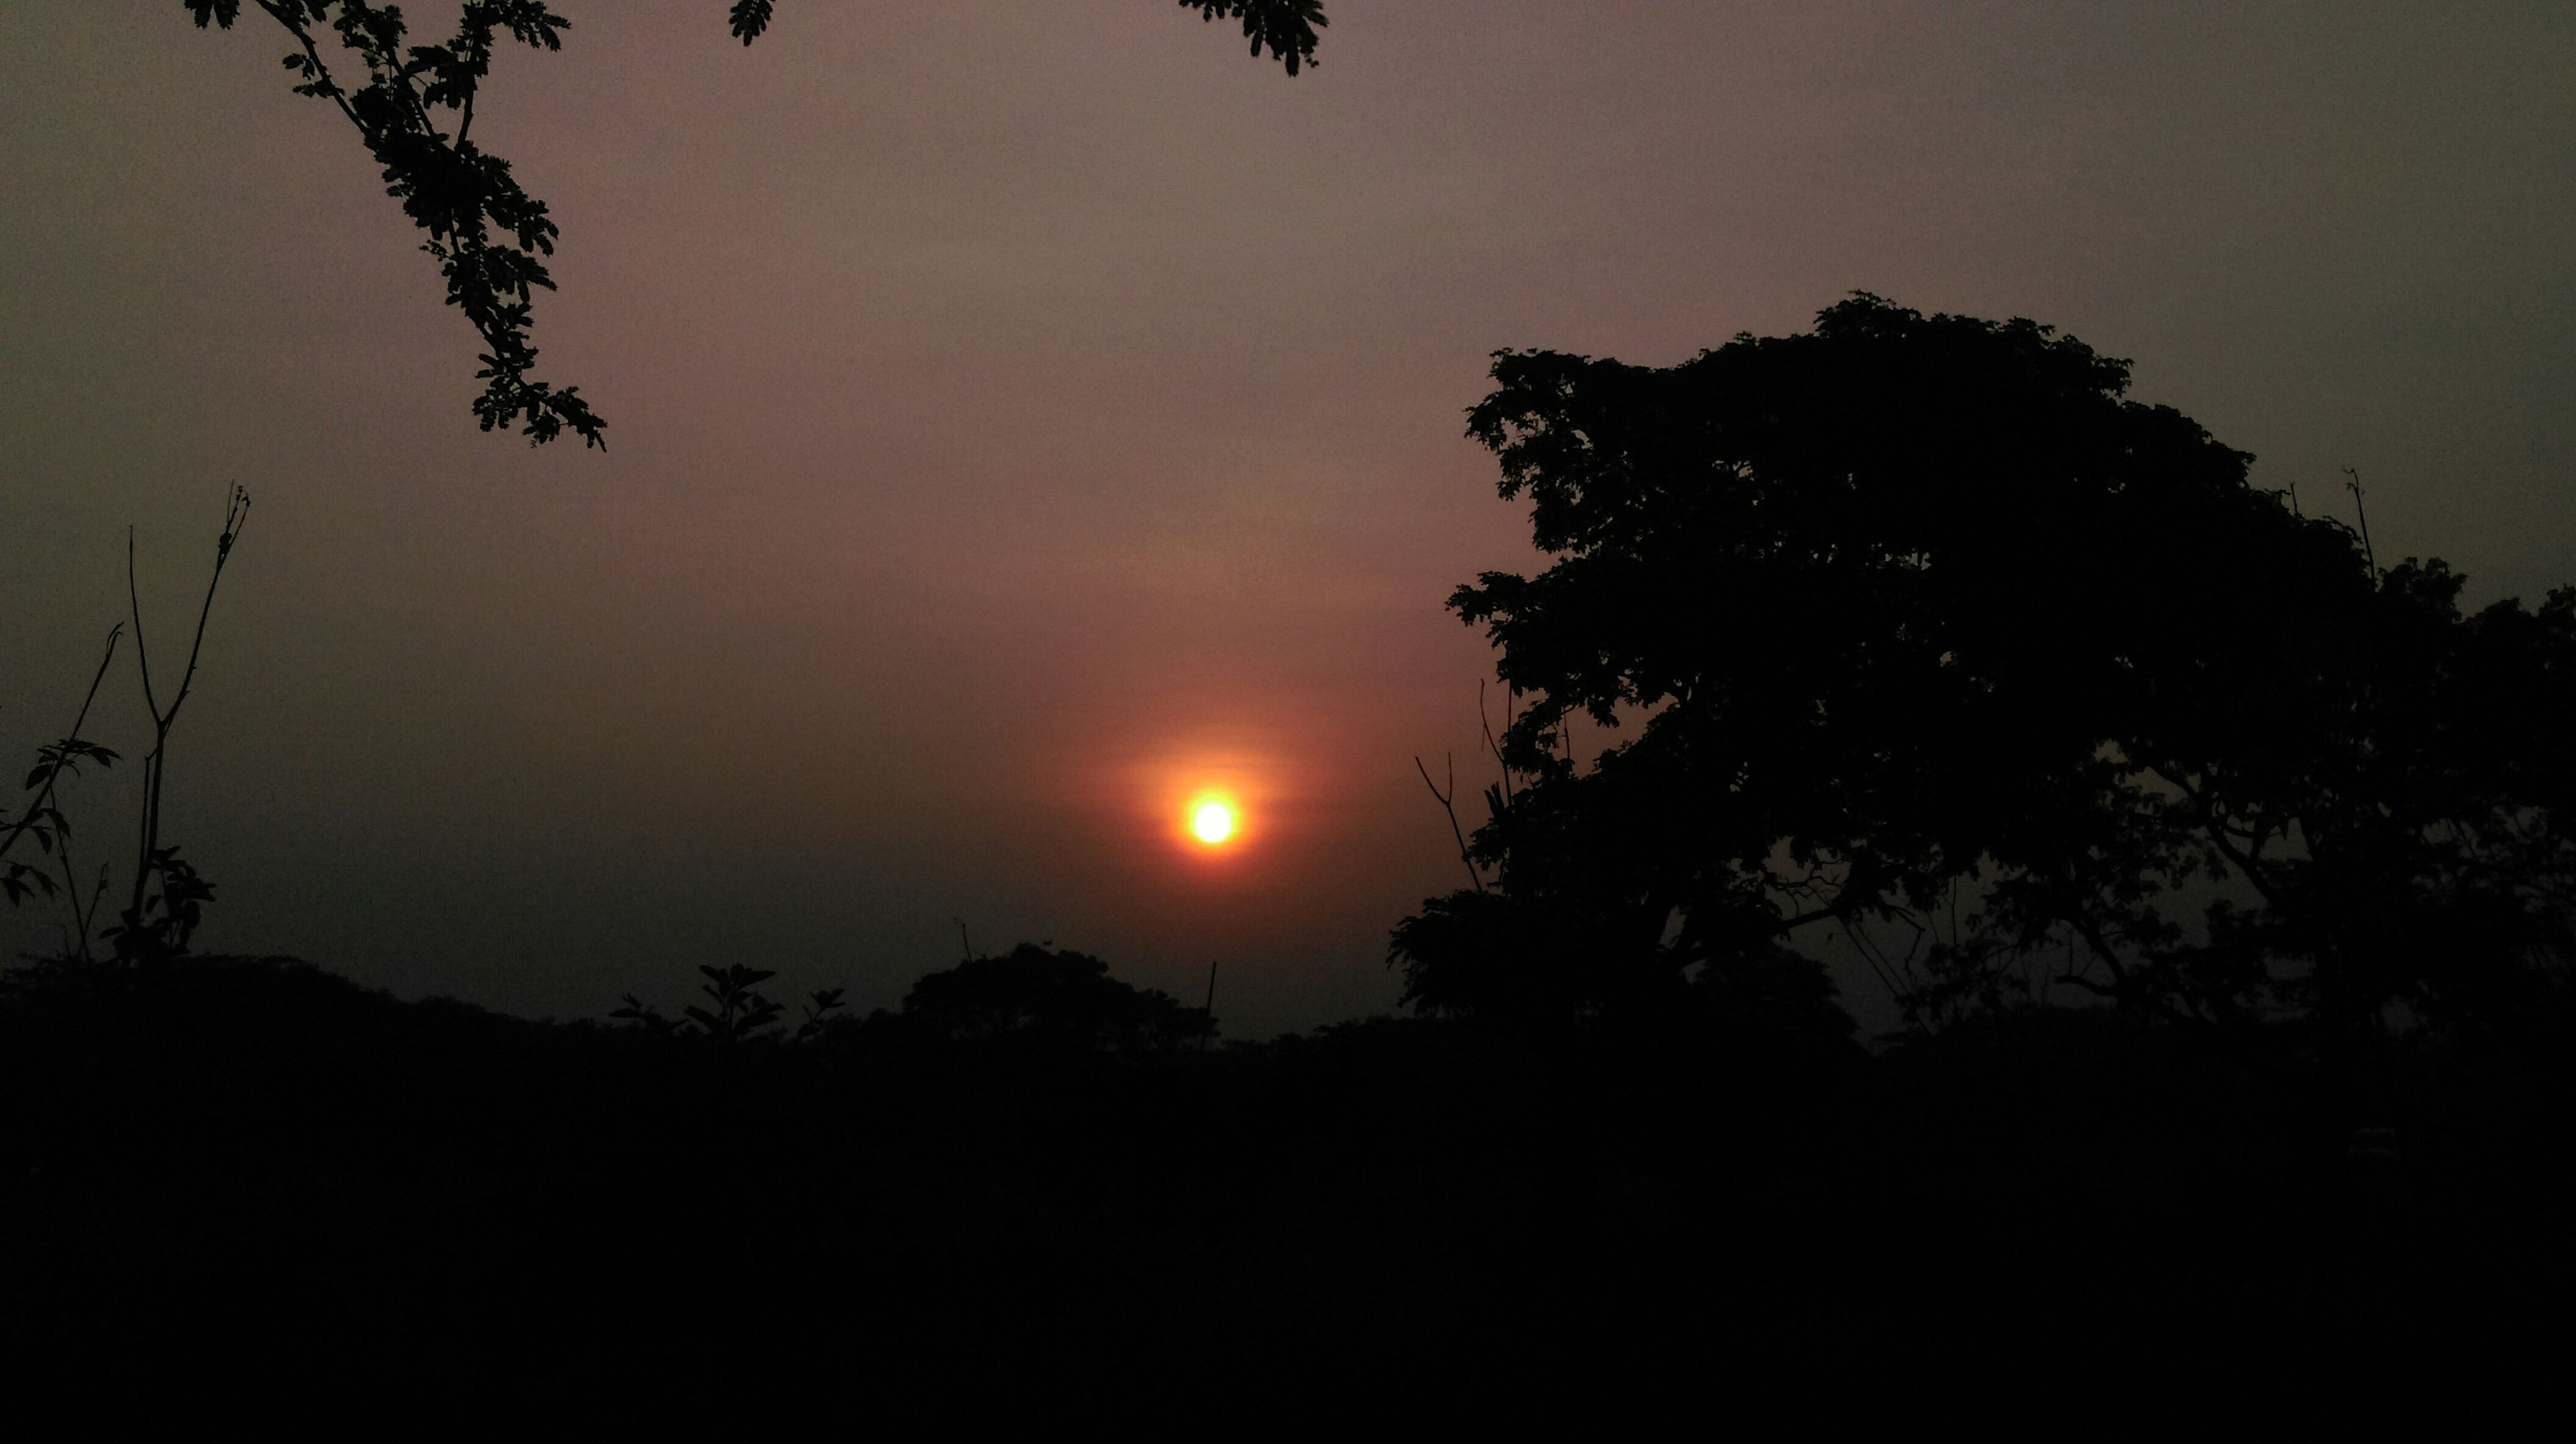 Sunrisephotography Pune City Battle Of Colours Devil Eye Game Of Shadow No Edits No Filters